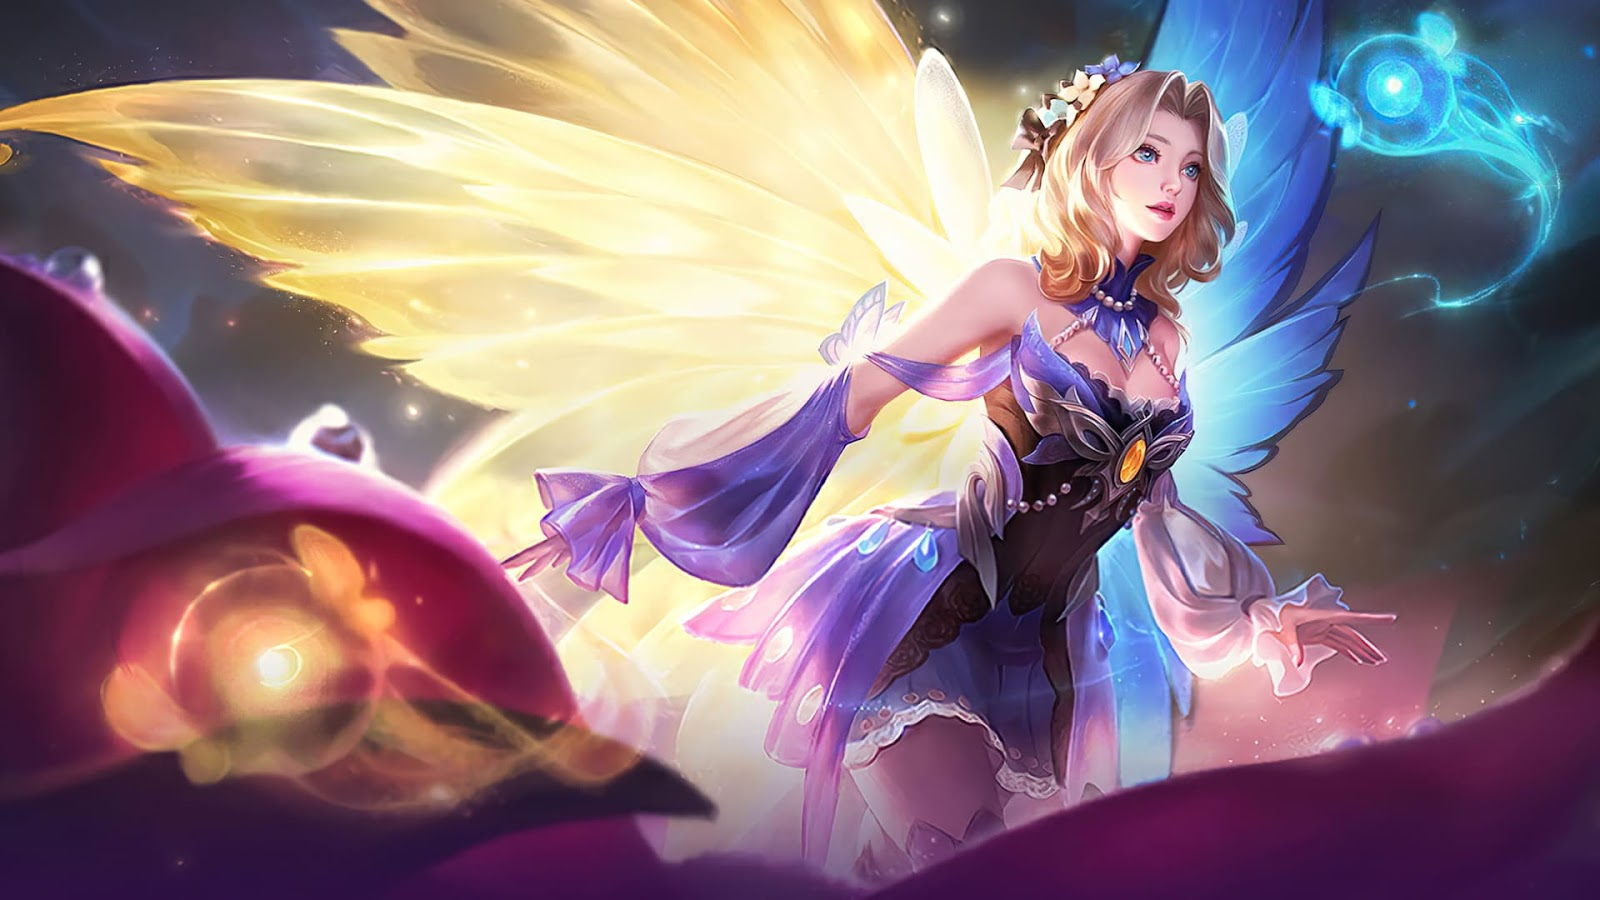 Wallpaper Lunox Butterfly Seraphim Skin Mobile Legends Full HD for PC